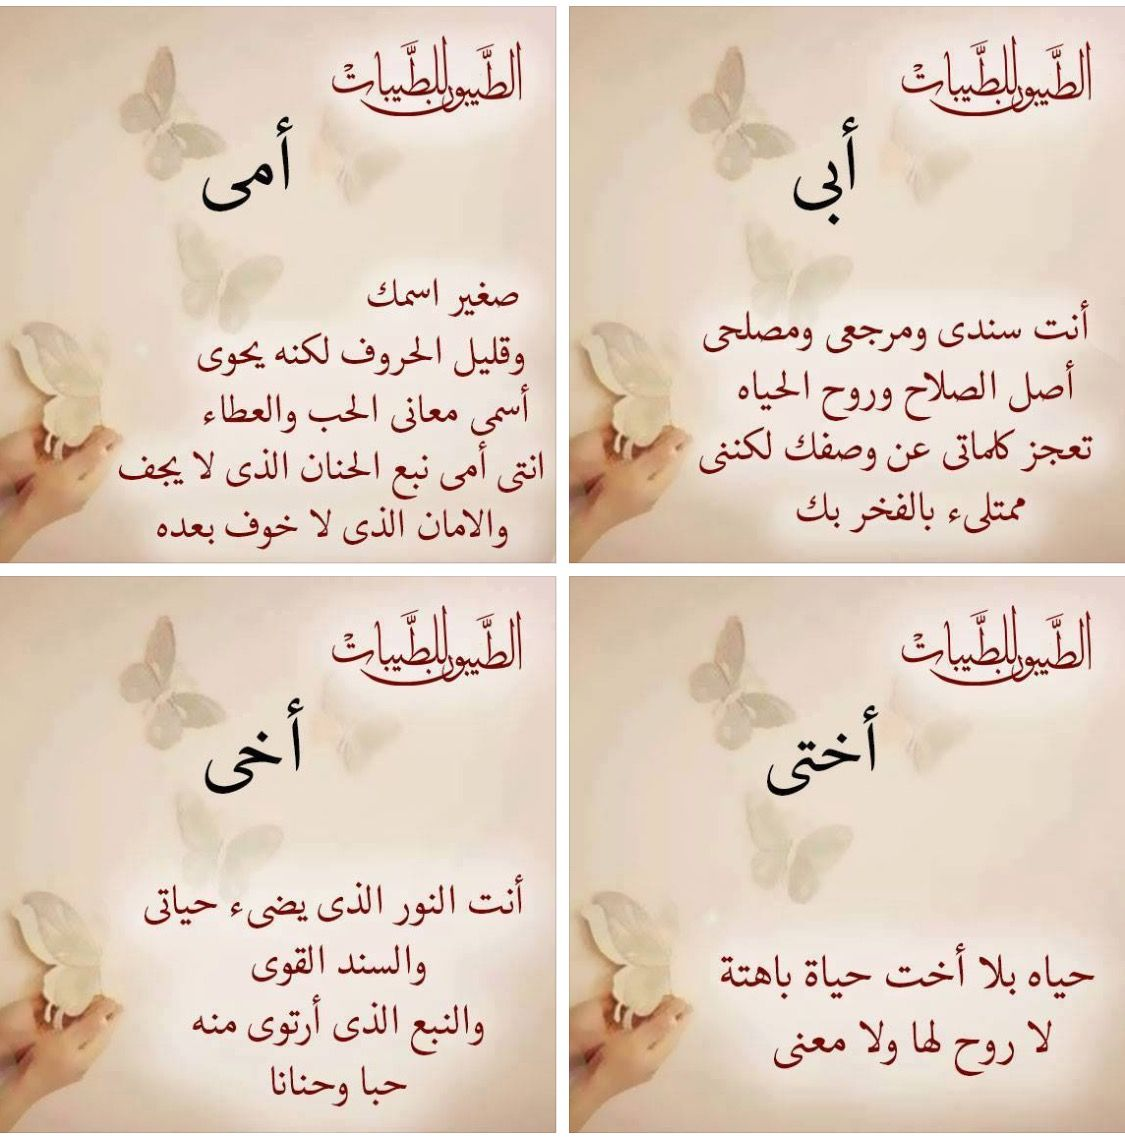 Desertrose أبي وأمي أخي وأختي Mom And Dad Quotes Good Day Quotes Dad Quotes